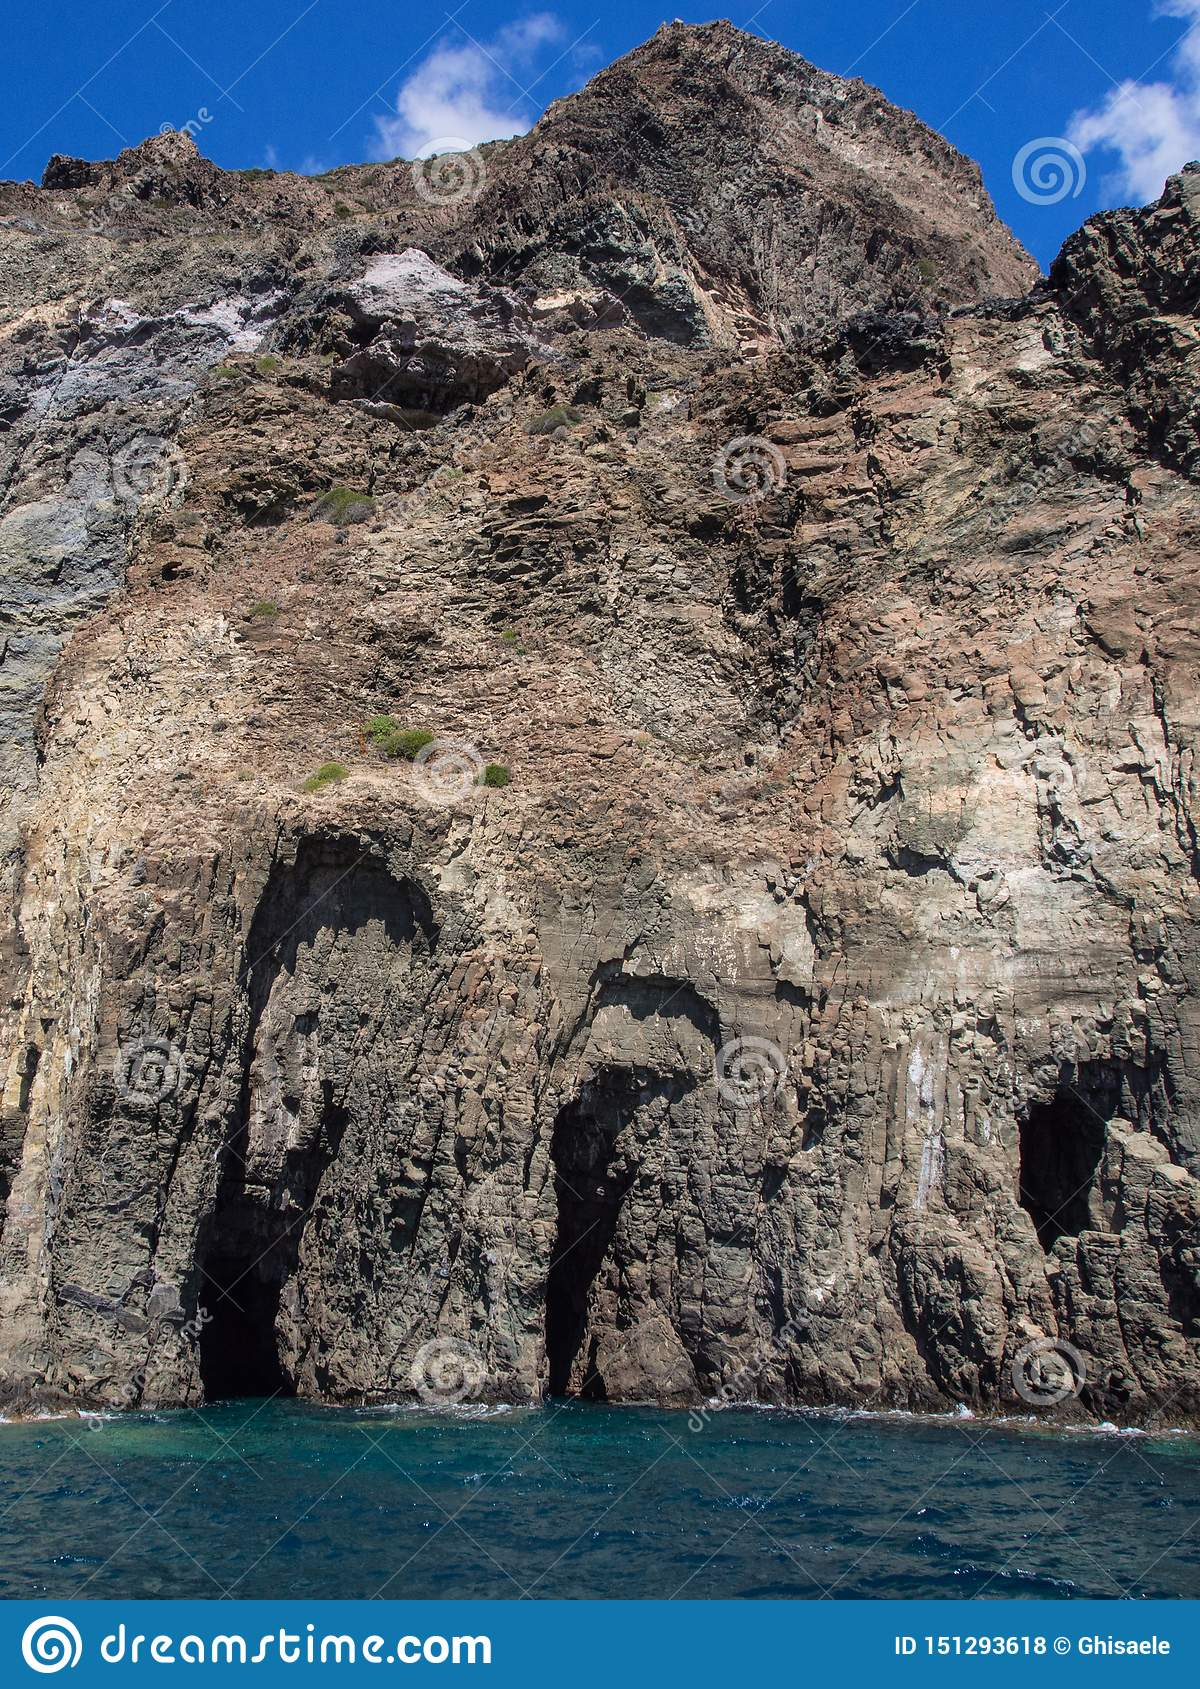 Volcanic rock and sea. Pantelleria, Sicily, Italy